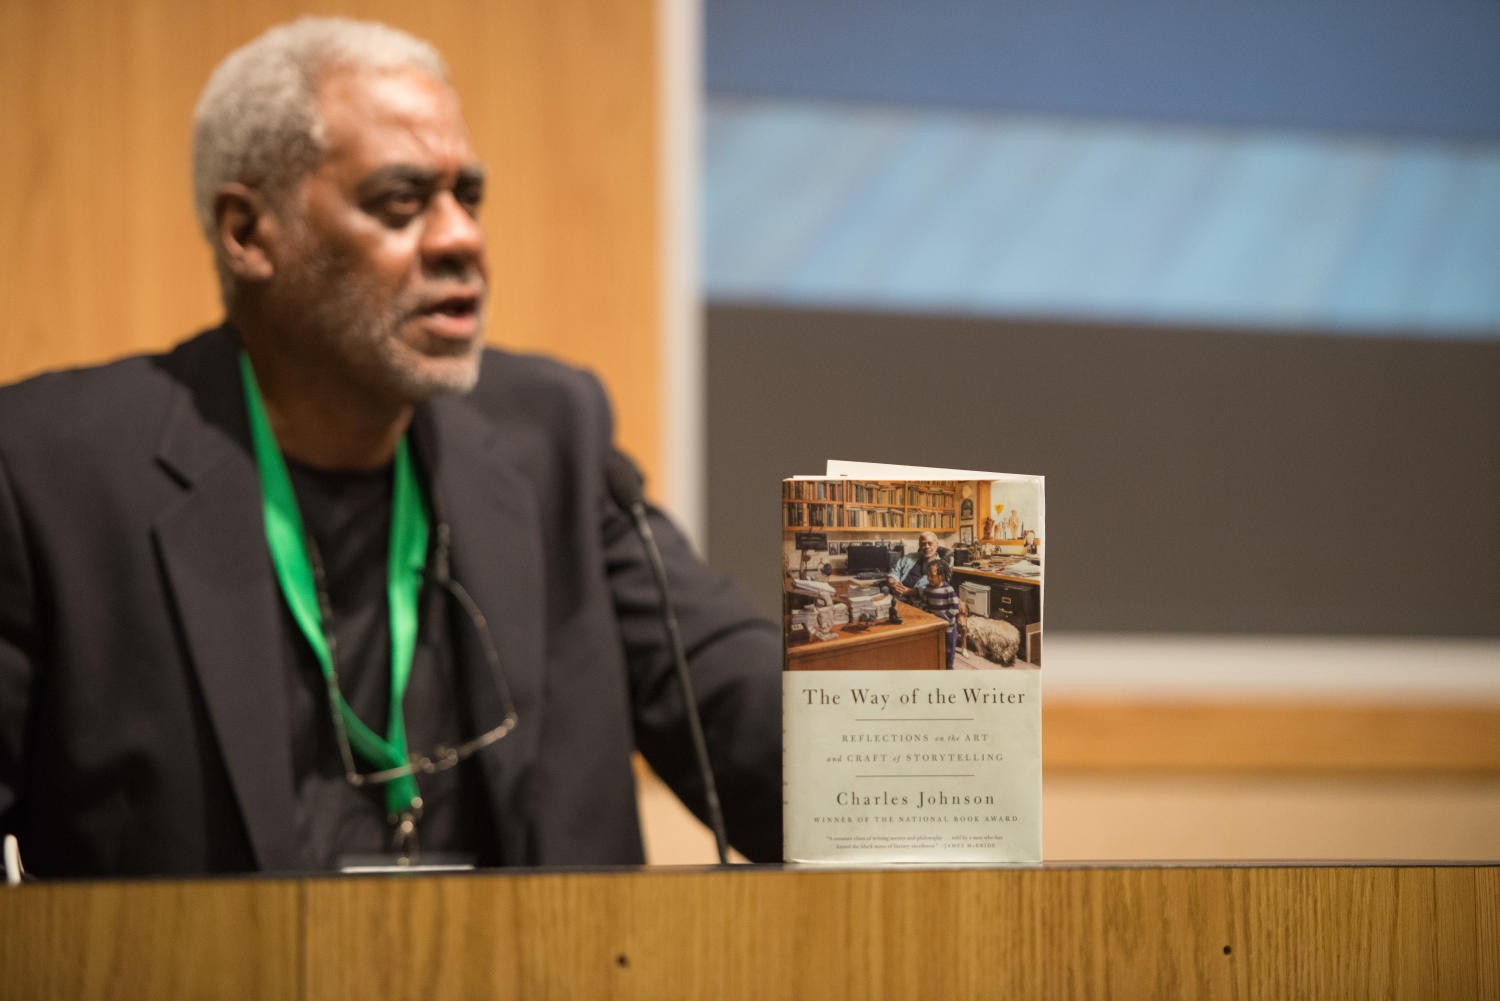 """[Charles Johnsons book], Photograph of Dr. Charles Johnson, a professor emeritus at the University of Washington and author of the book """"The Way of the Writer"""", standing at a podium during his keynote. The event was held during the 2017 Mayborn Literary Nonfiction Conference at the Hilton DFW Lakes Executive Conference Center in Grapevine, TX.,"""